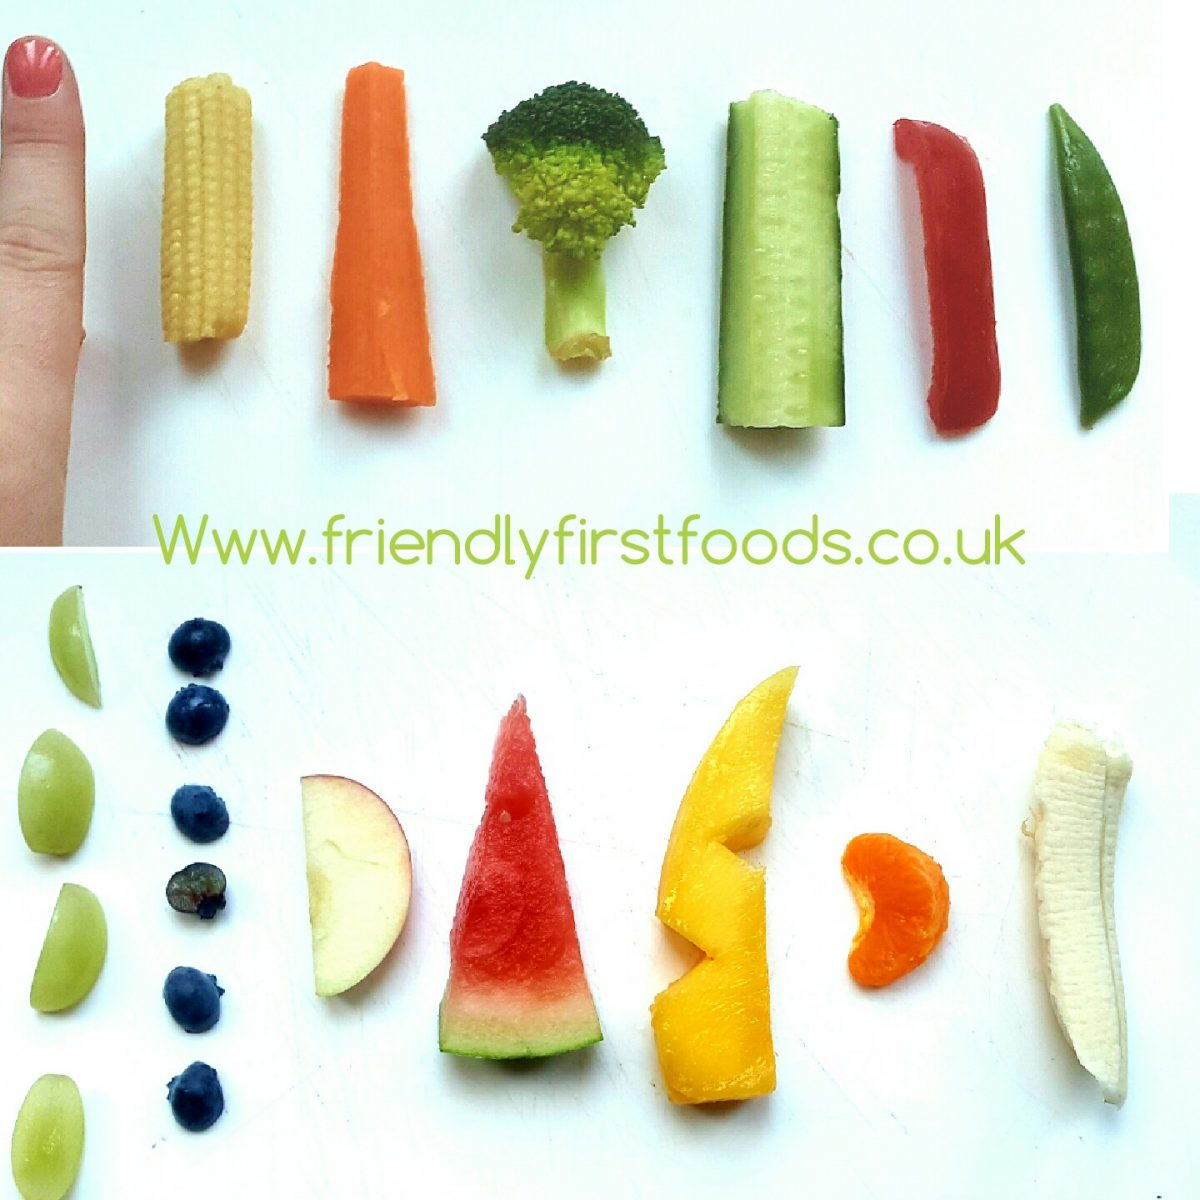 Finger food size guide and a really useful banana hack!